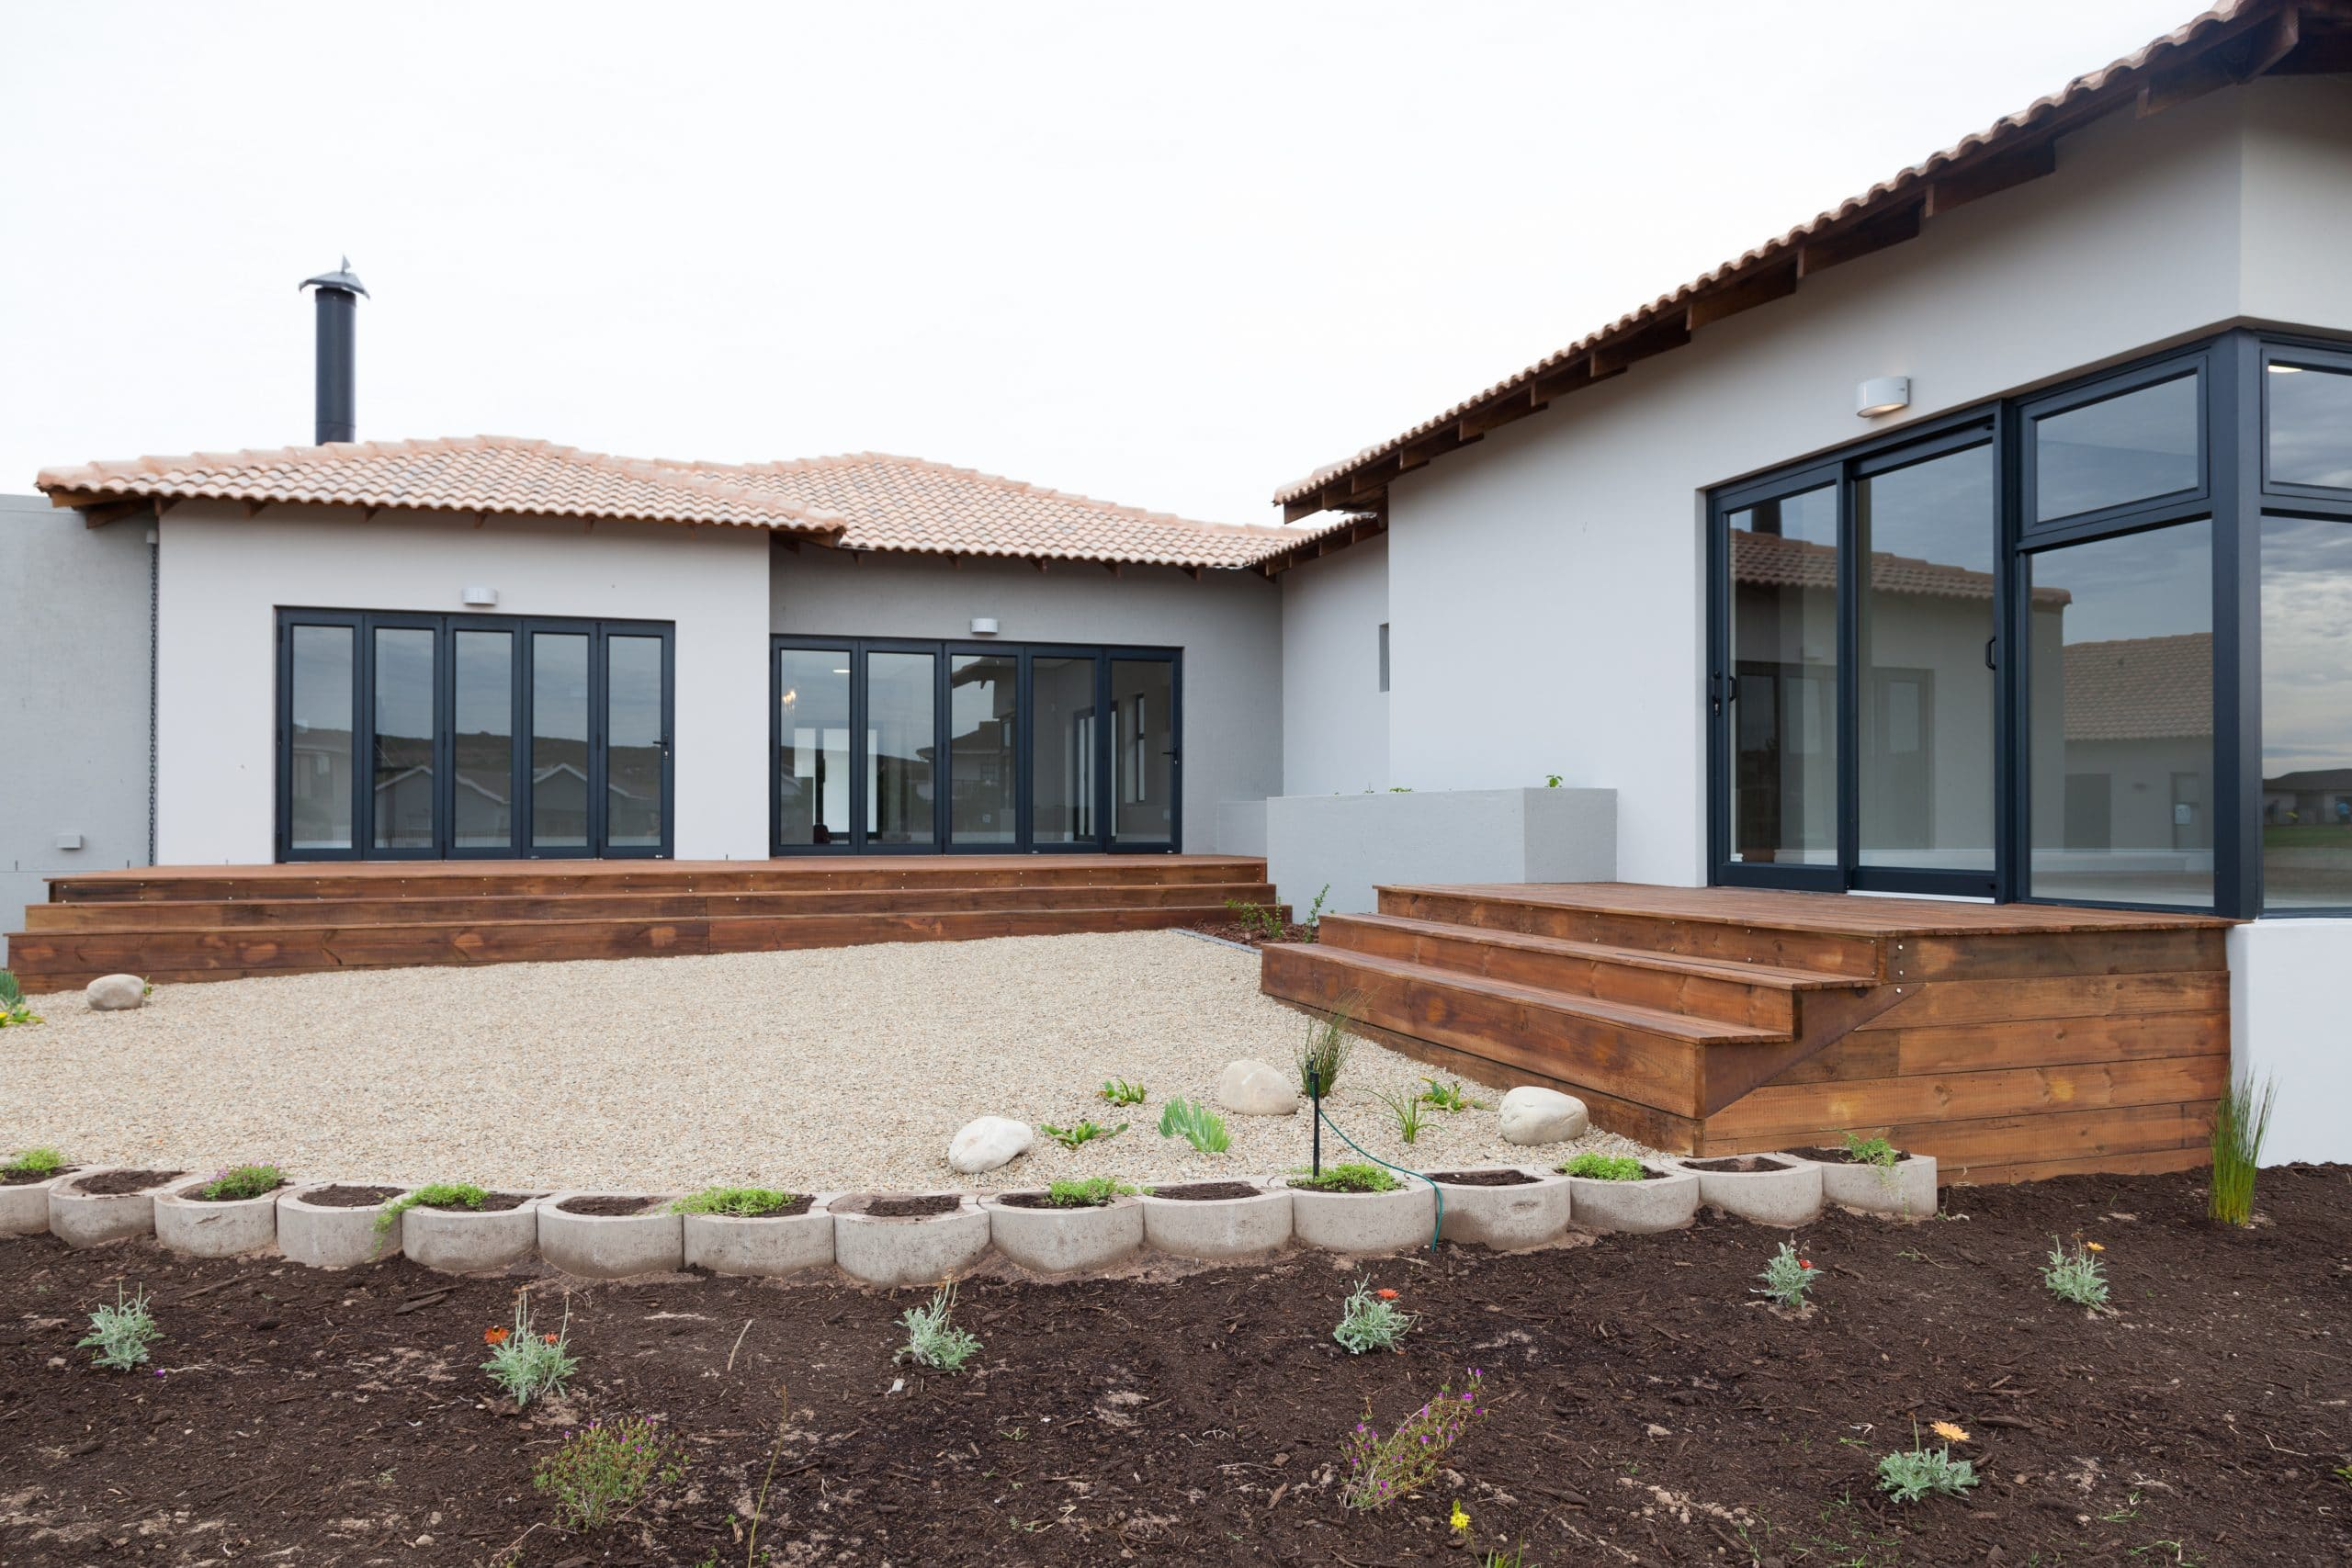 circle aggregate landscaped yard in langebaan country estate with wooden decking